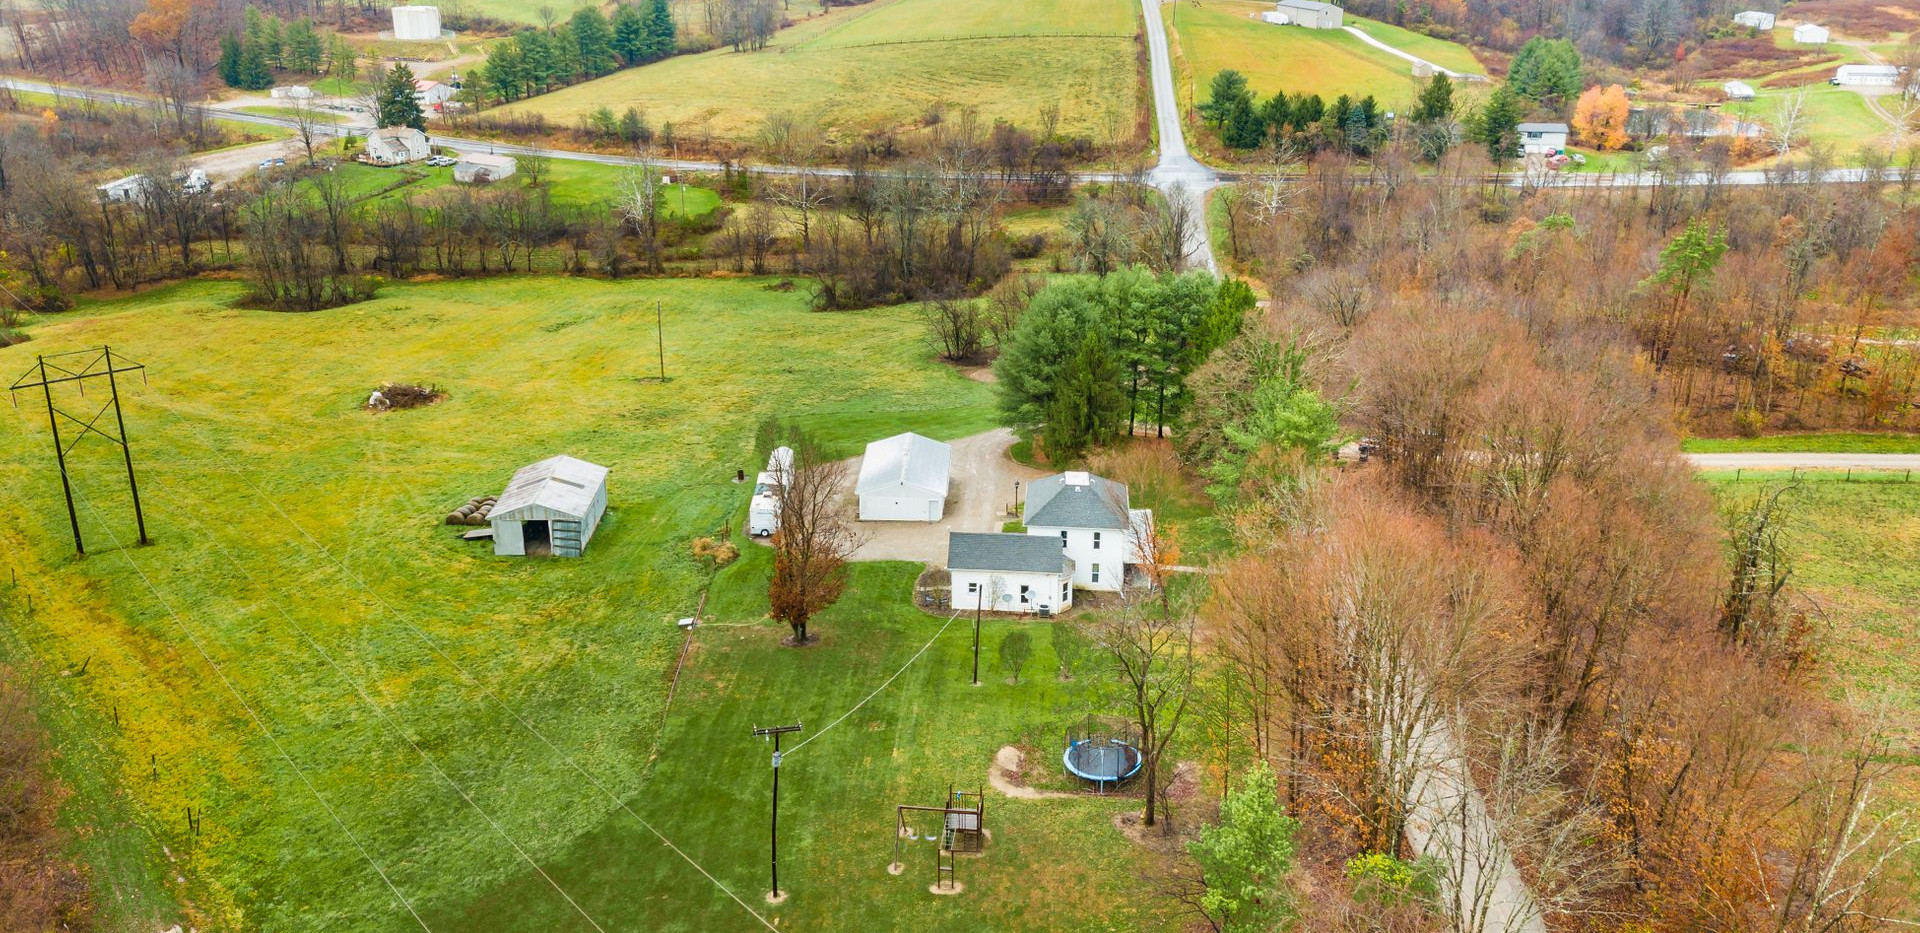 [054] 10563 Wesley Chapel Rd, Mt Perry,